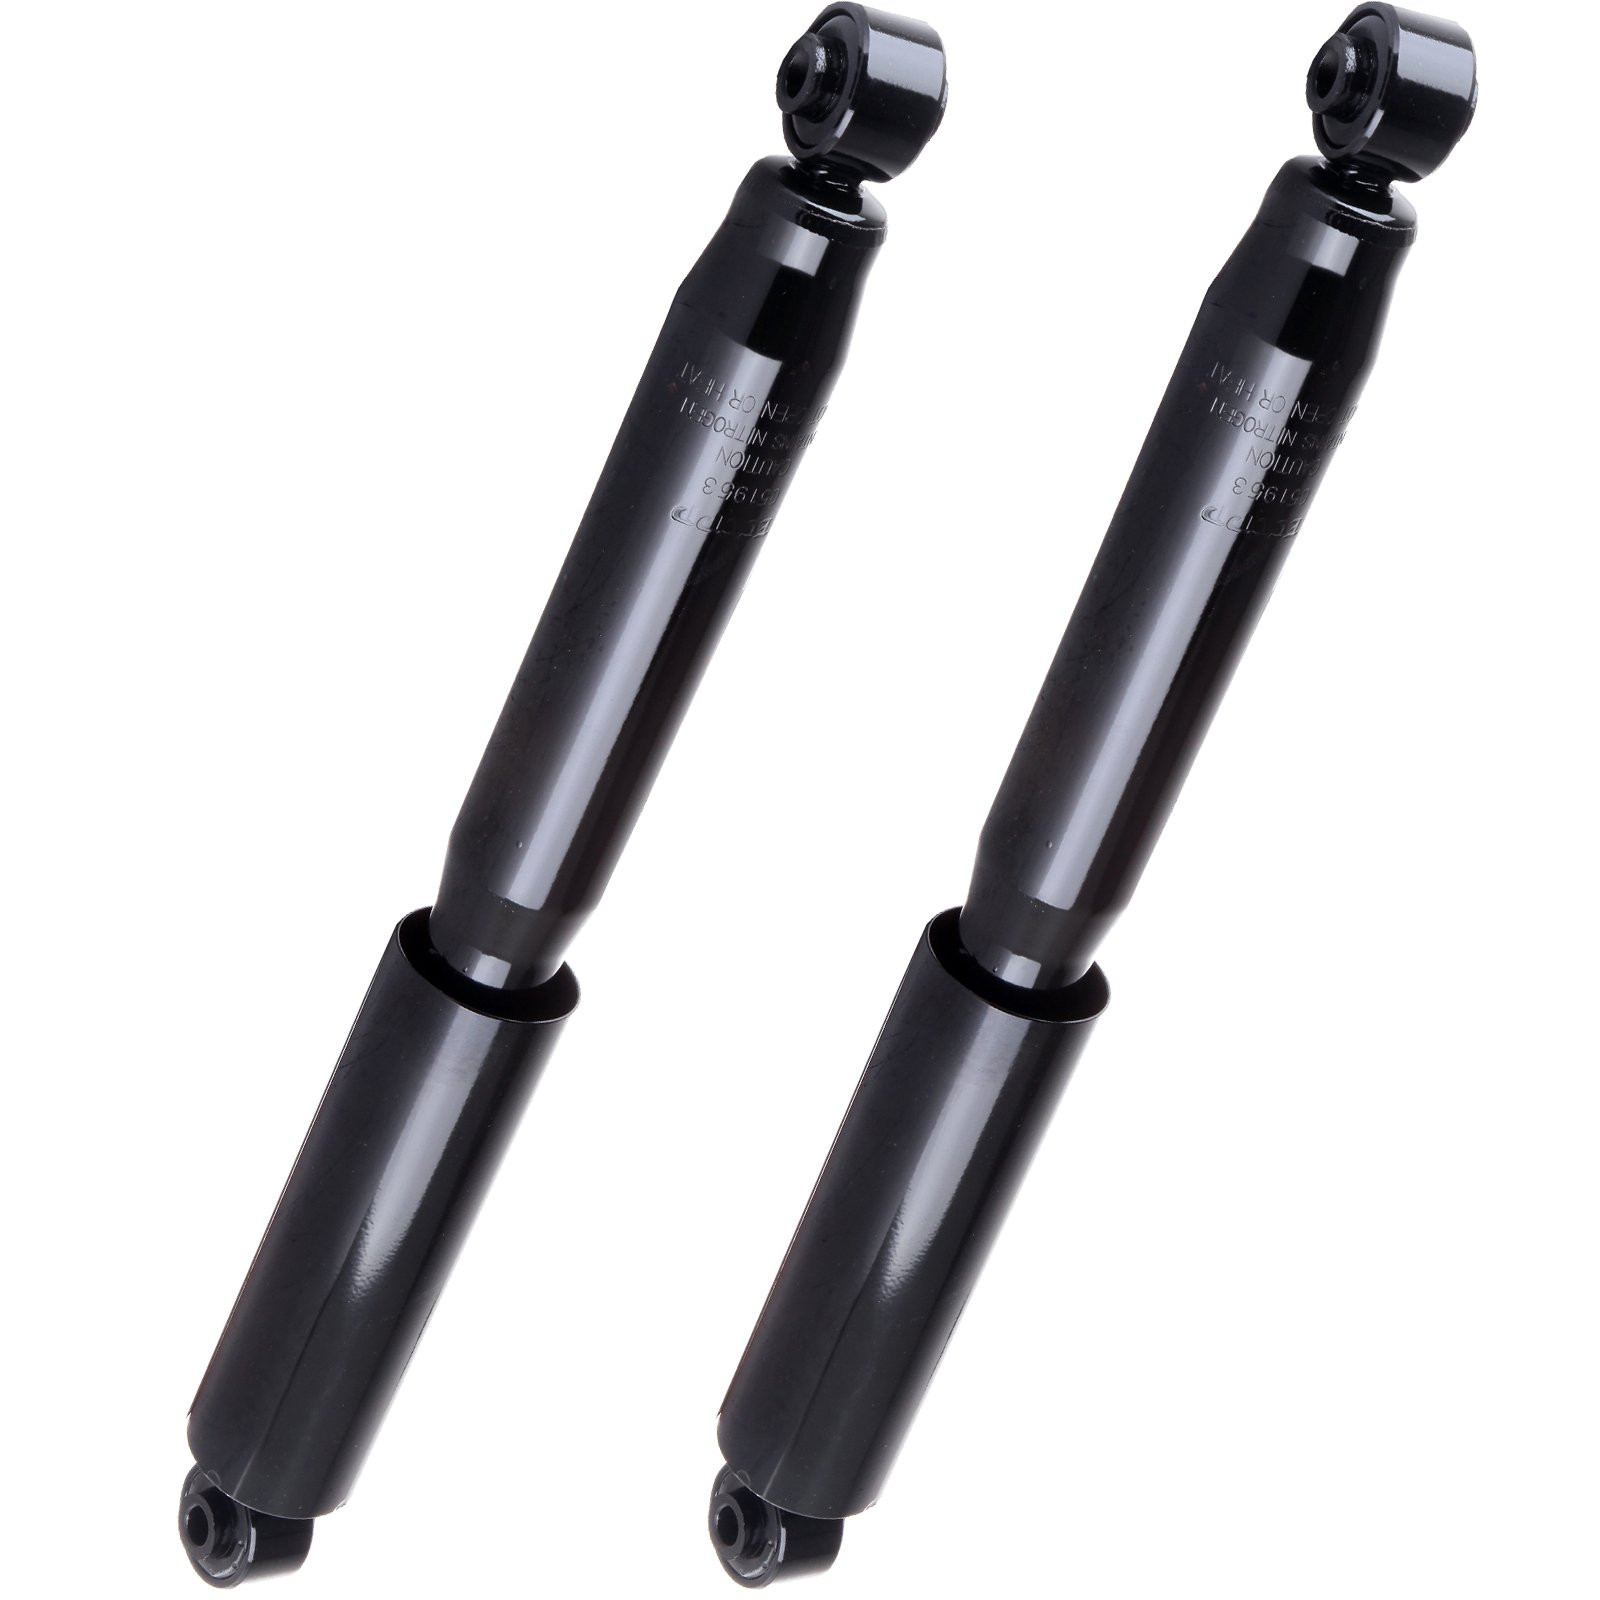 Shocks and Struts,ECCPP Rear Shock Absorbers Strut Assembly for 2005-2011 Chevy Equinox,2010-2011 GMC Terrain,2002-2010 Saturn Vue,2006-2009 Pontiac Torrent Compatible with 345055 911258